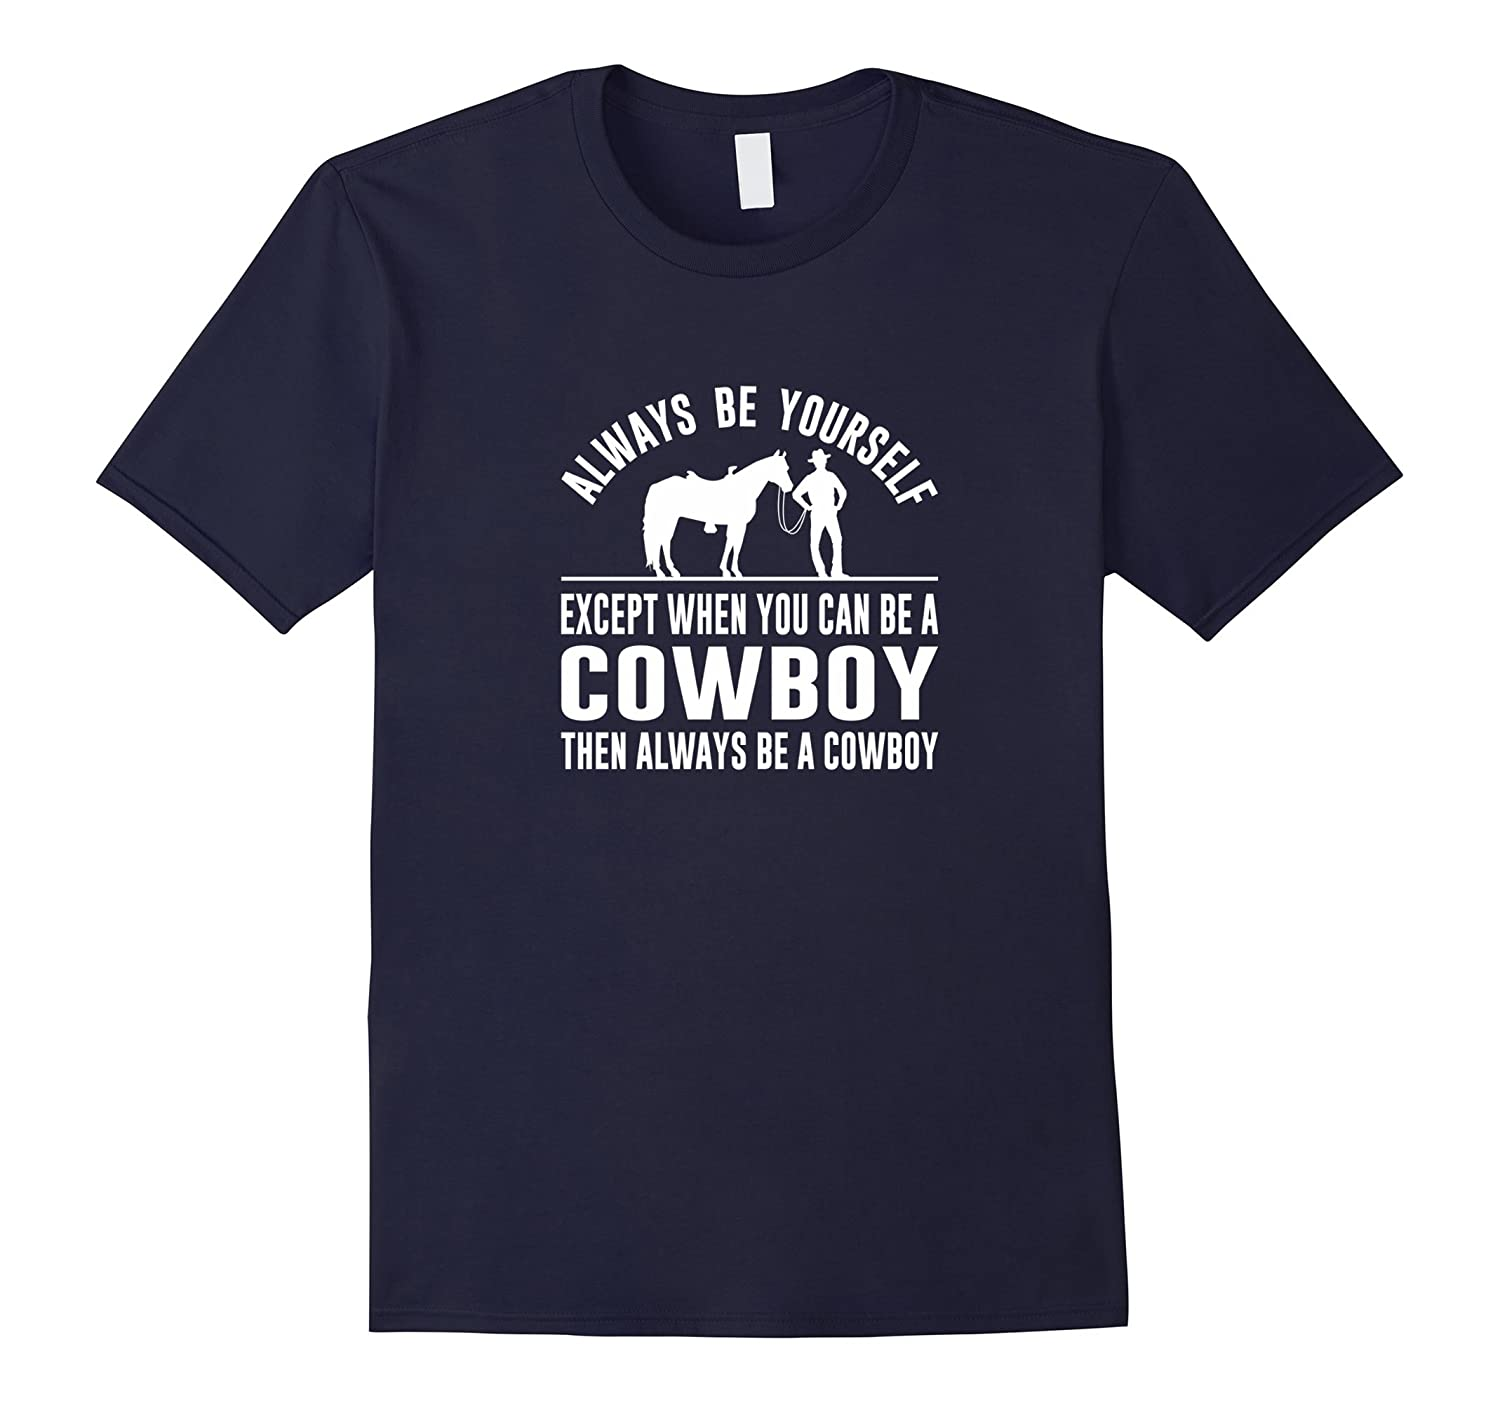 Always Be Yourself - Except When You Can Be a Cowboy Shirt-RT